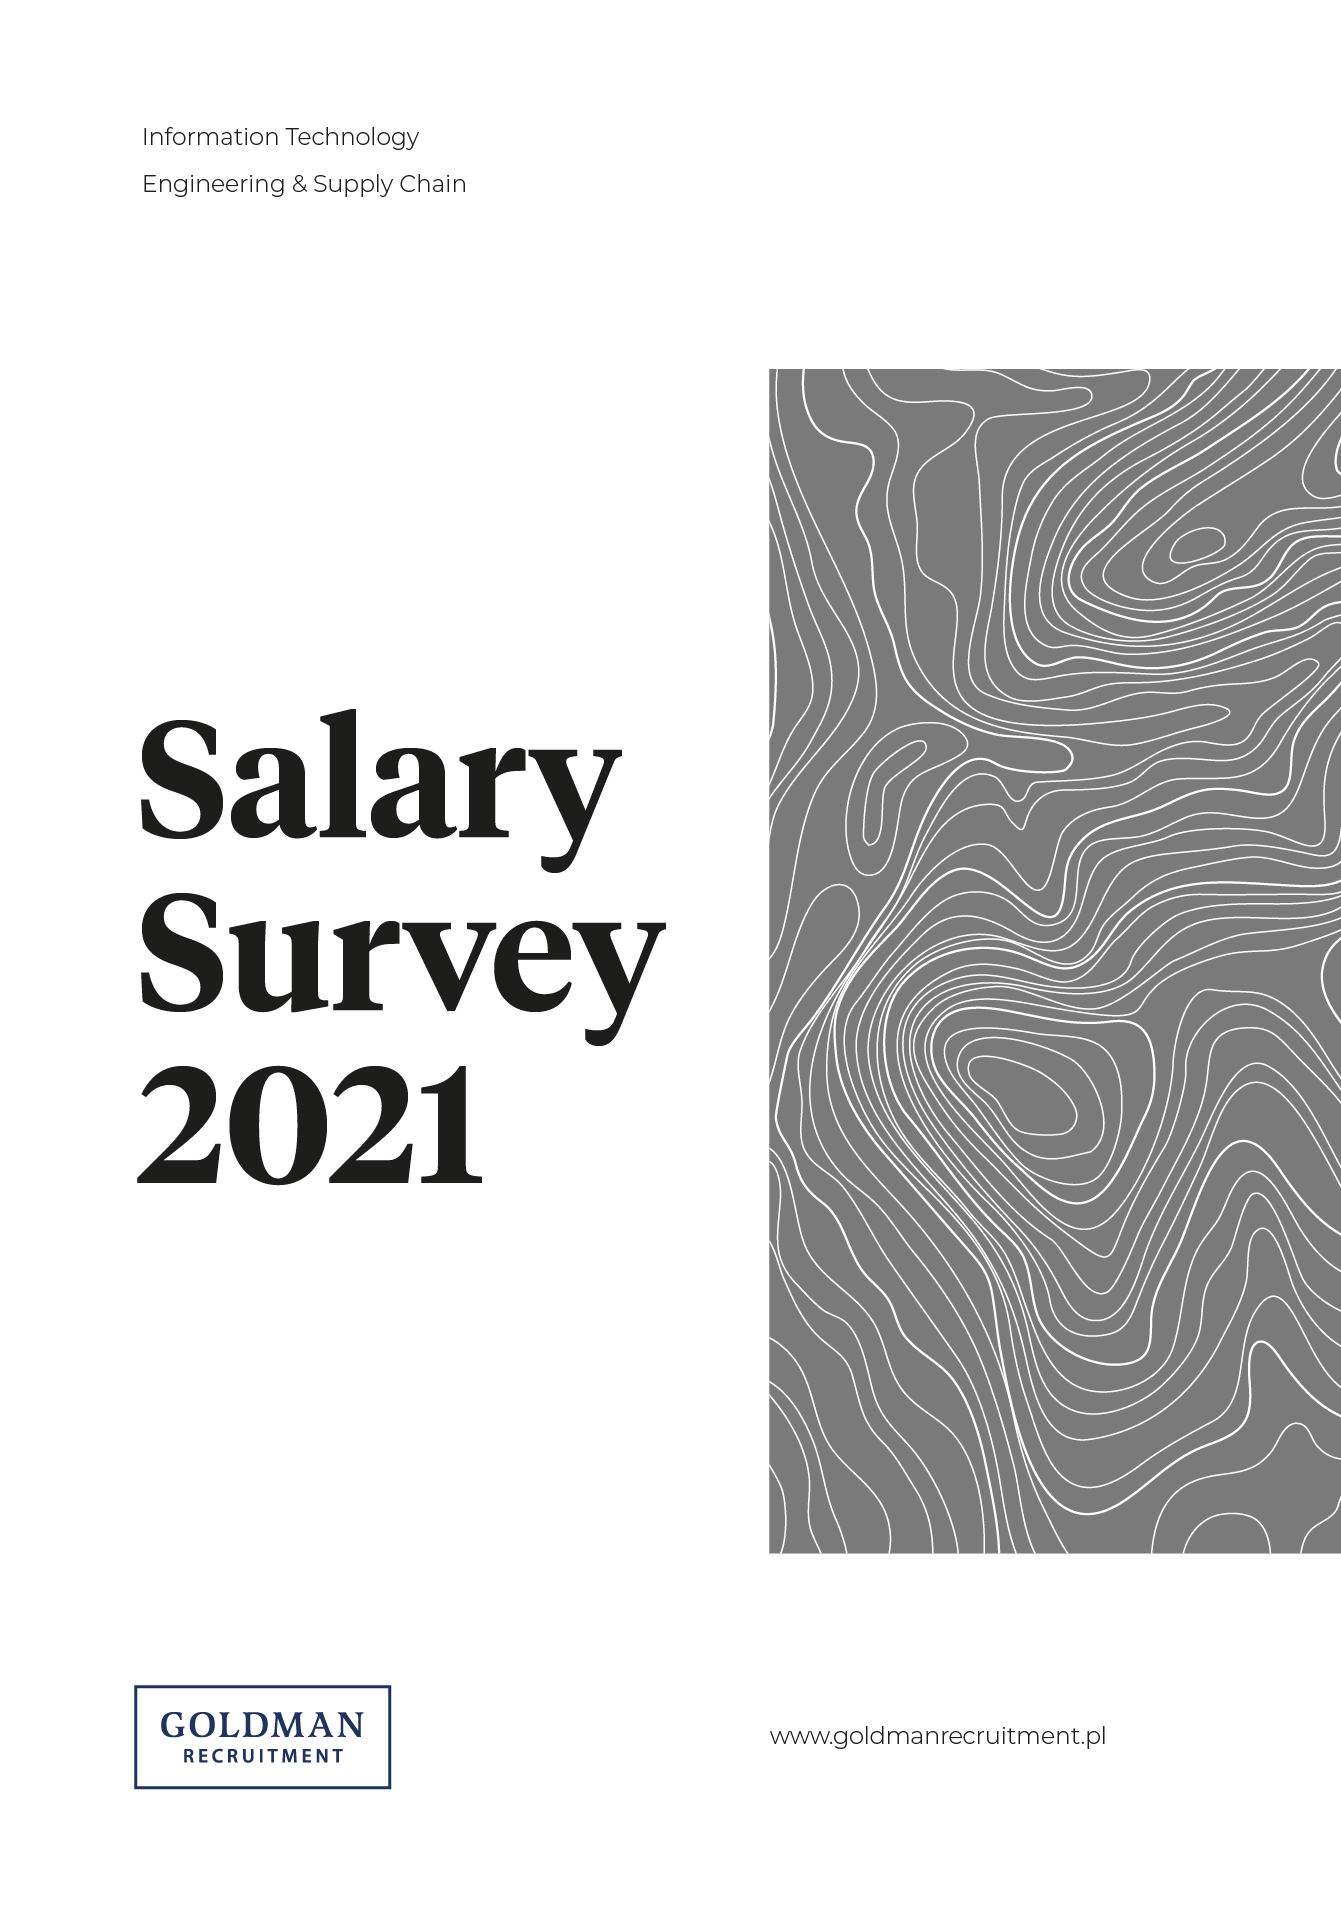 IT & Engineering Salary Survey 2021